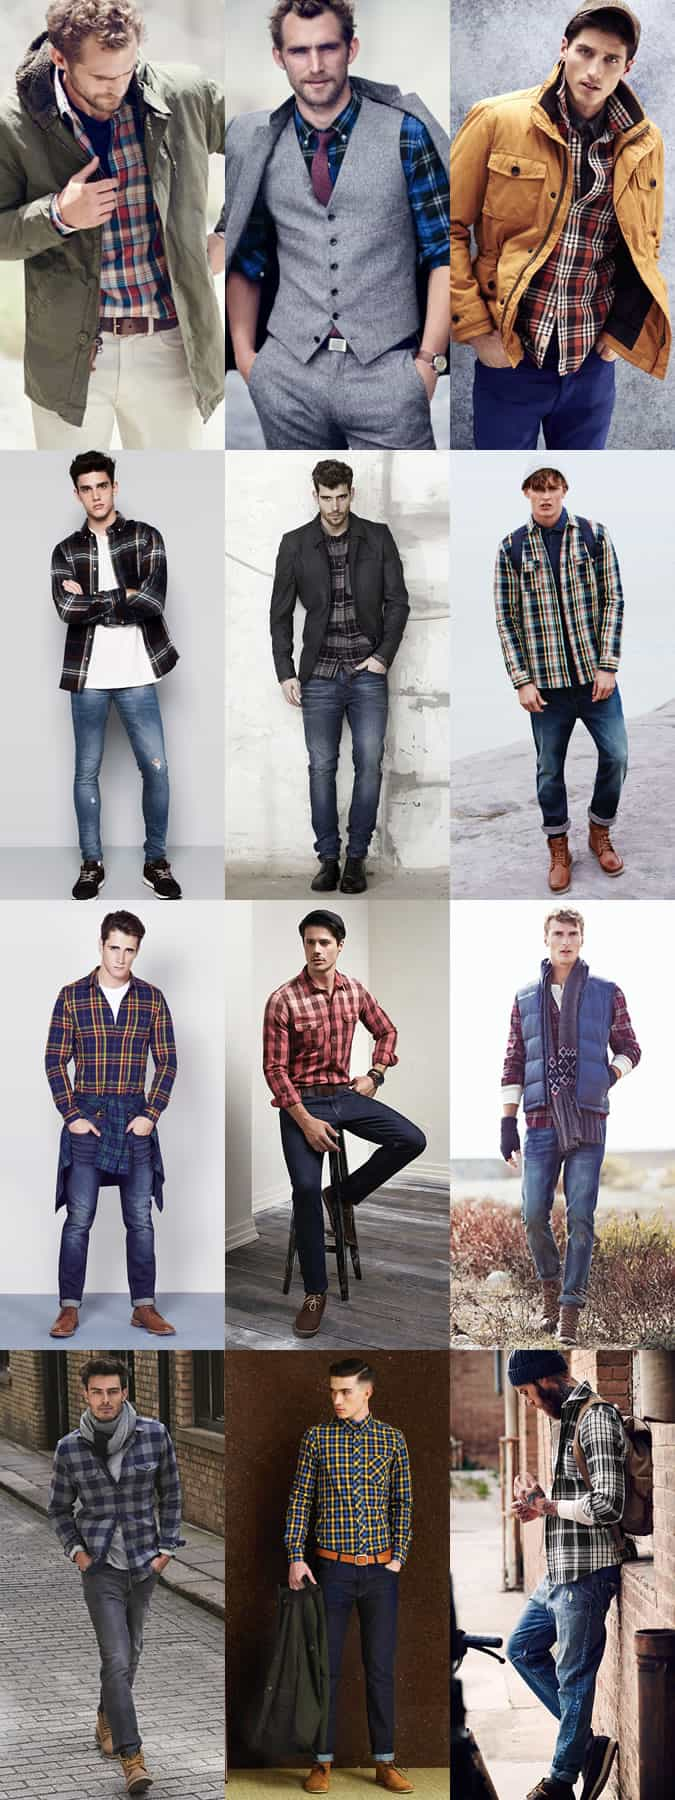 Men's Check and Tartan Shirts Outfit Inspiration Lookbook